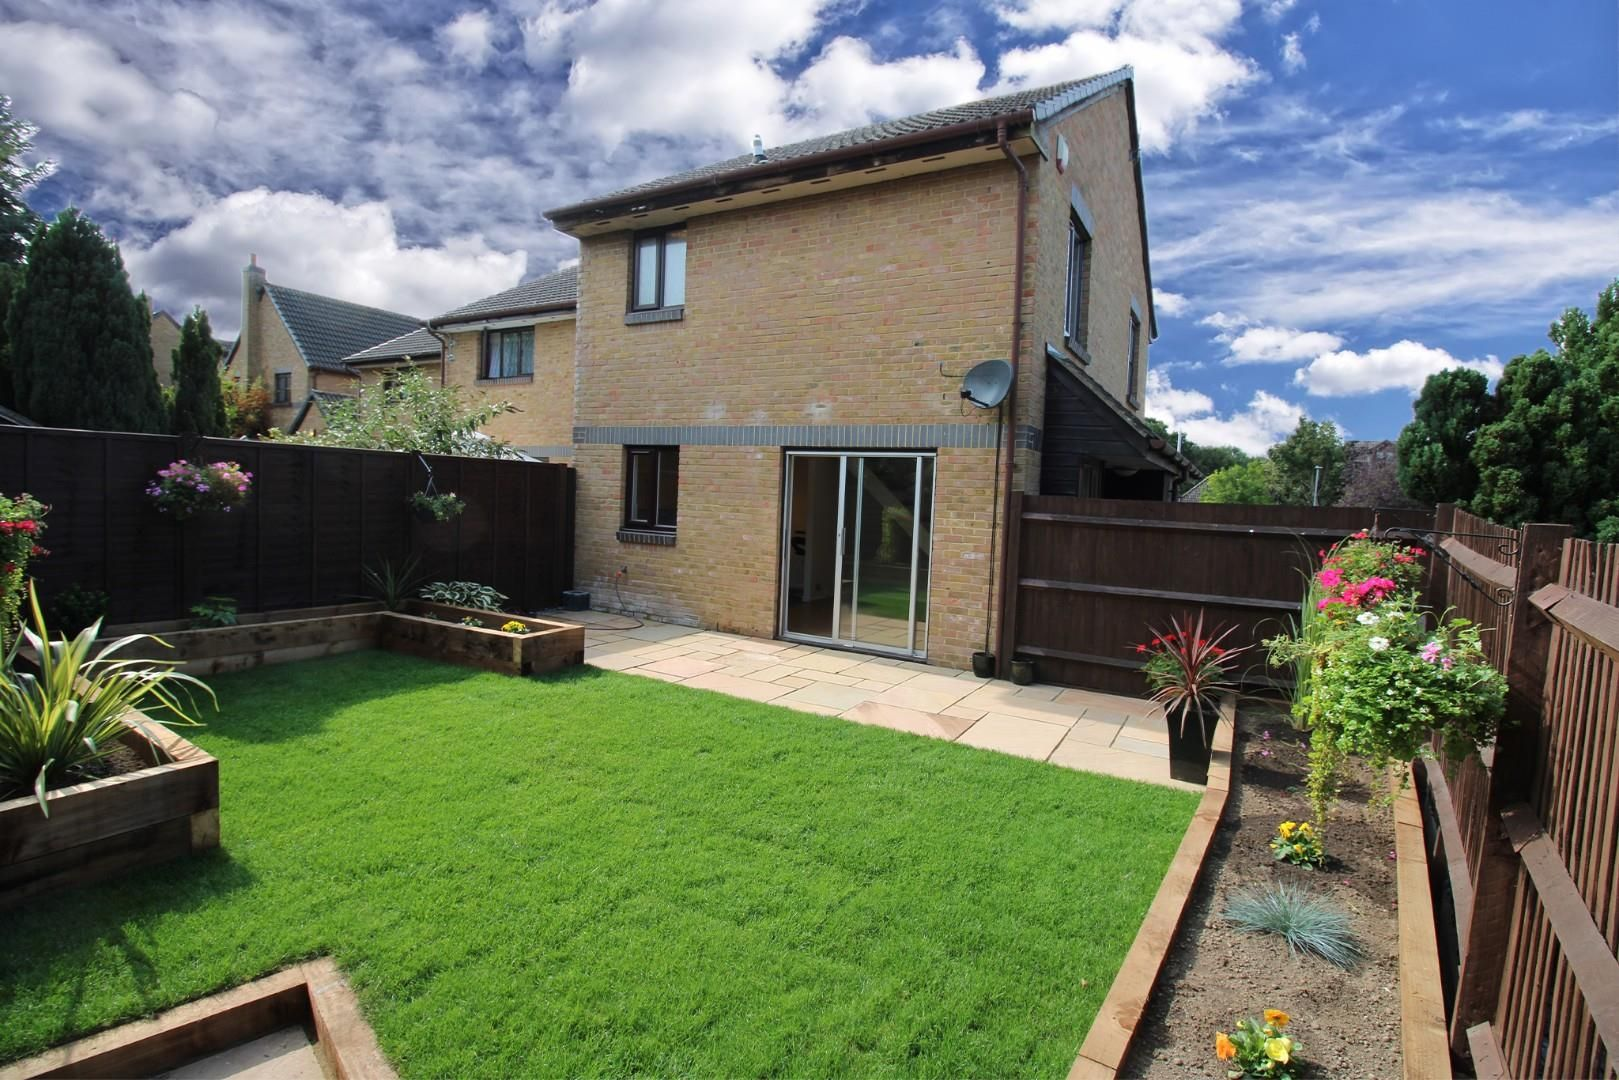 1 bed house for sale, RG40